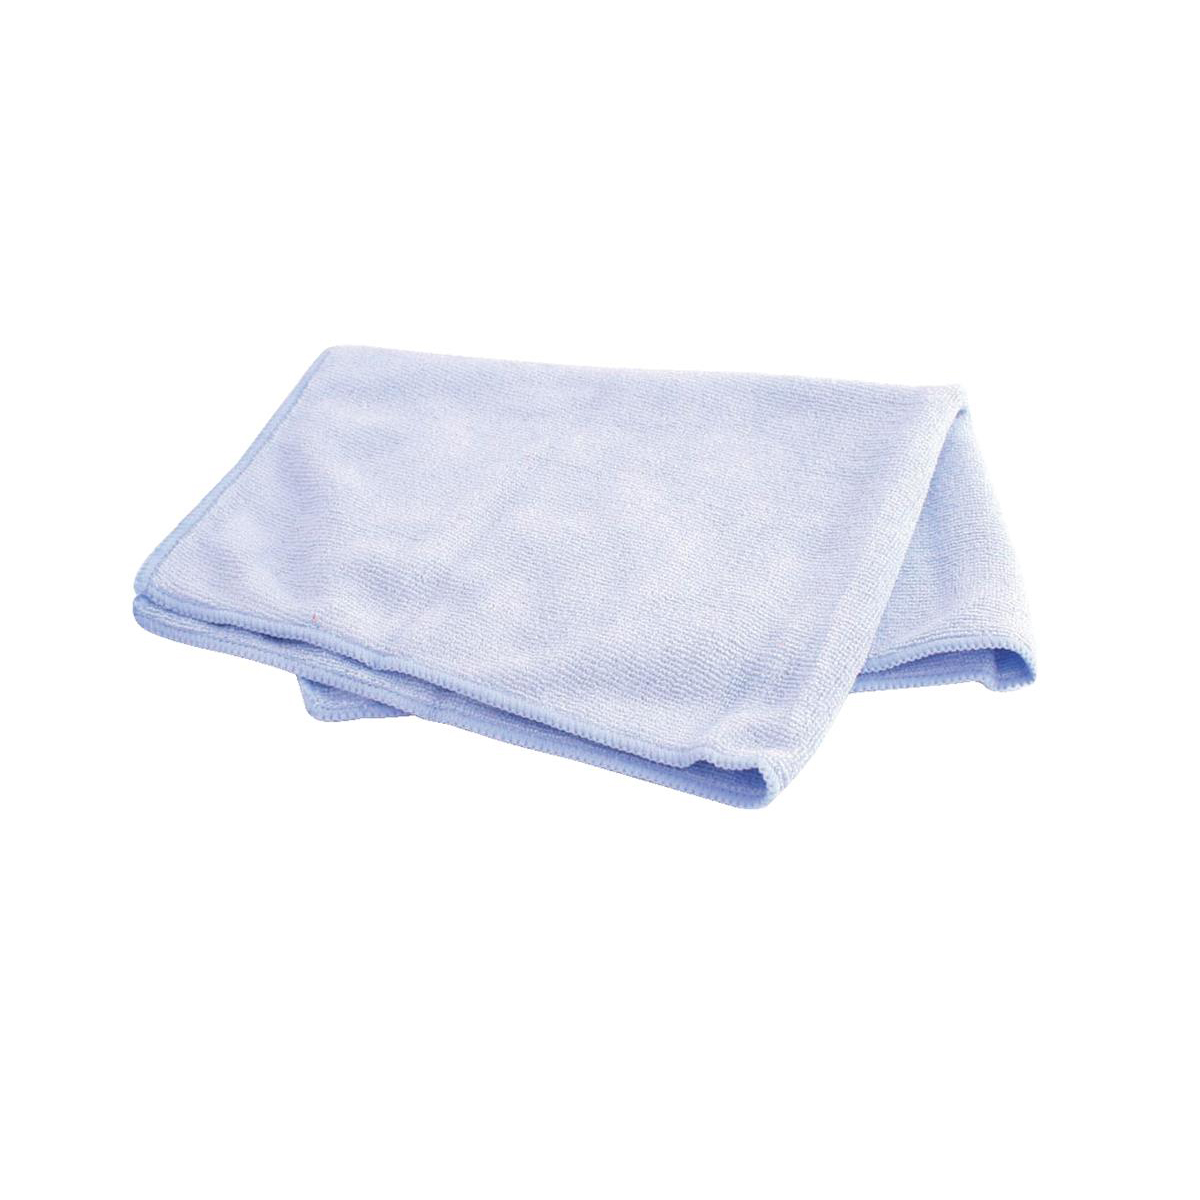 Maxima Mircrofibre Cleaning Cloth Blue